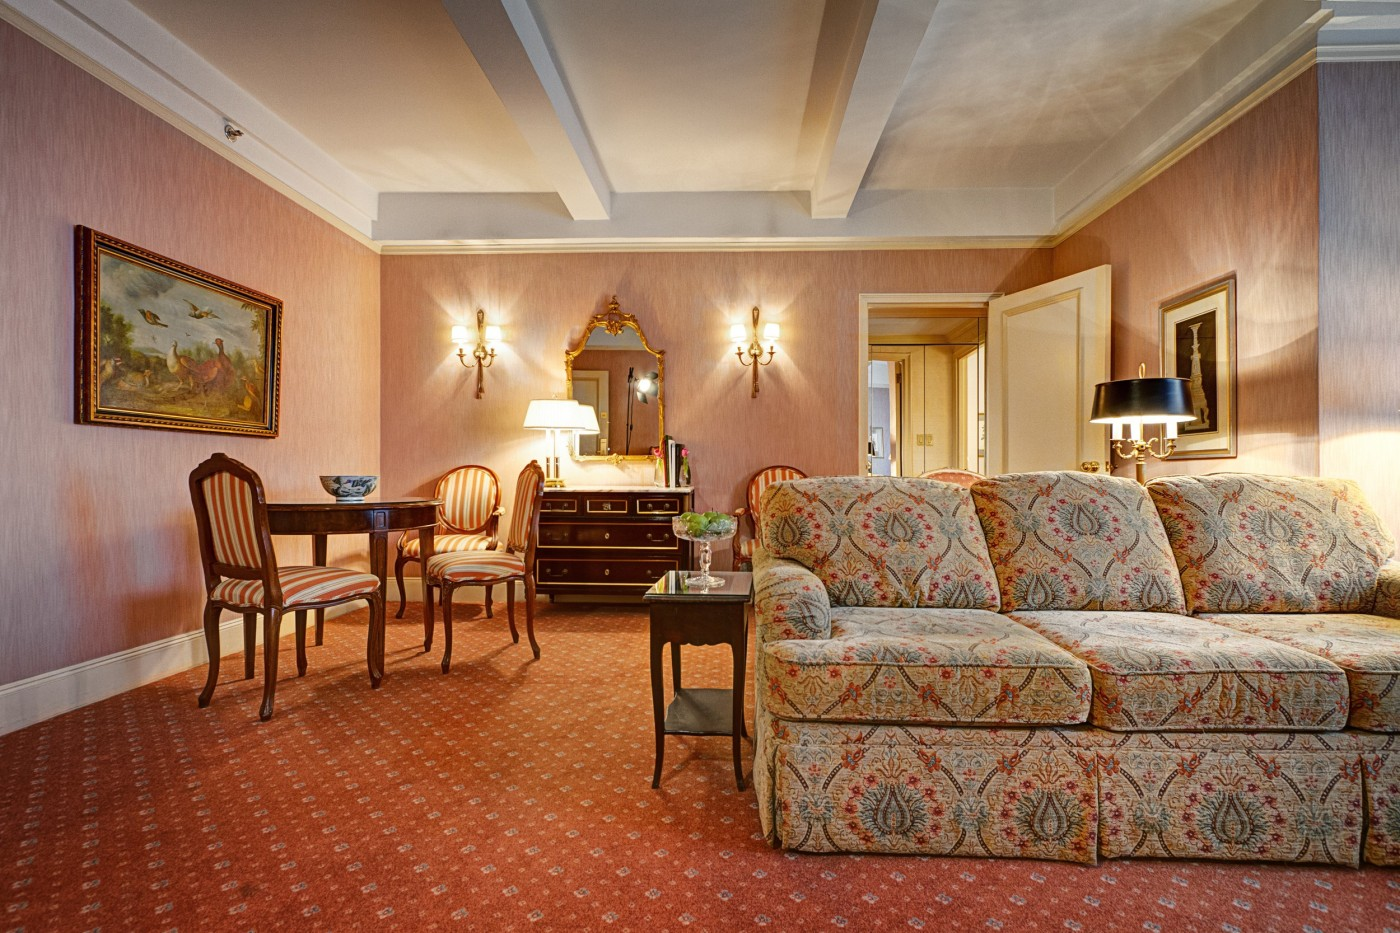 Living Room Of The Grand King Suite At The Hotel Elysee In NYC. Features A  Small Dining Table And A Kitchenette.